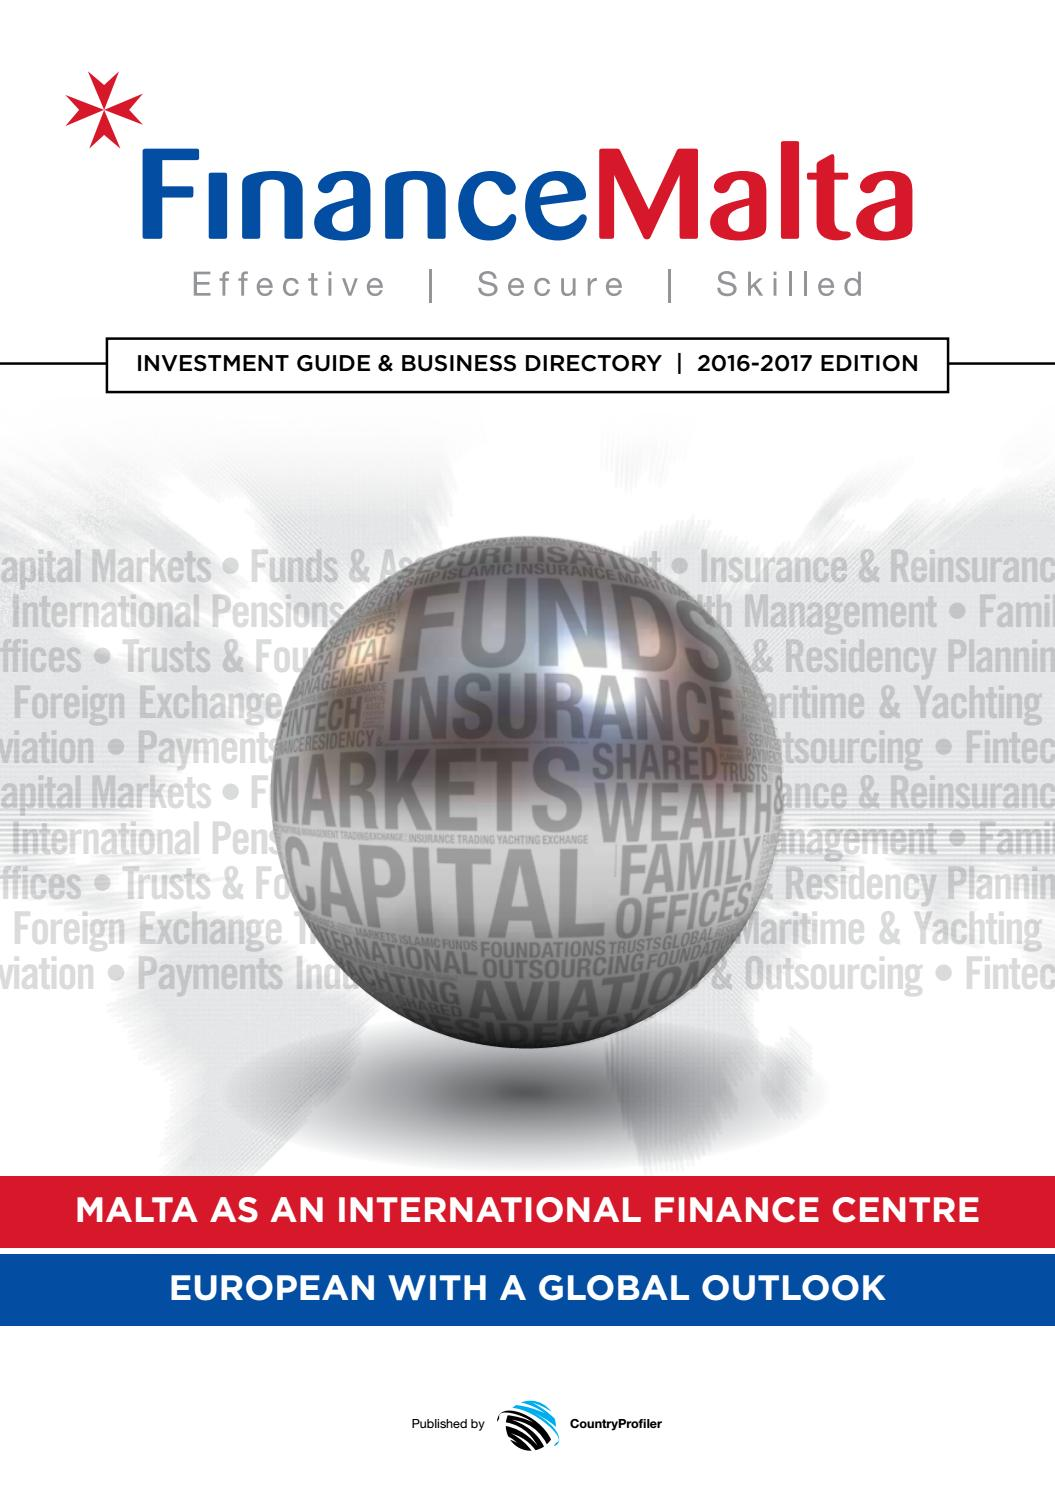 FinanceMalta Investment Guide and Business Directory 2016 by